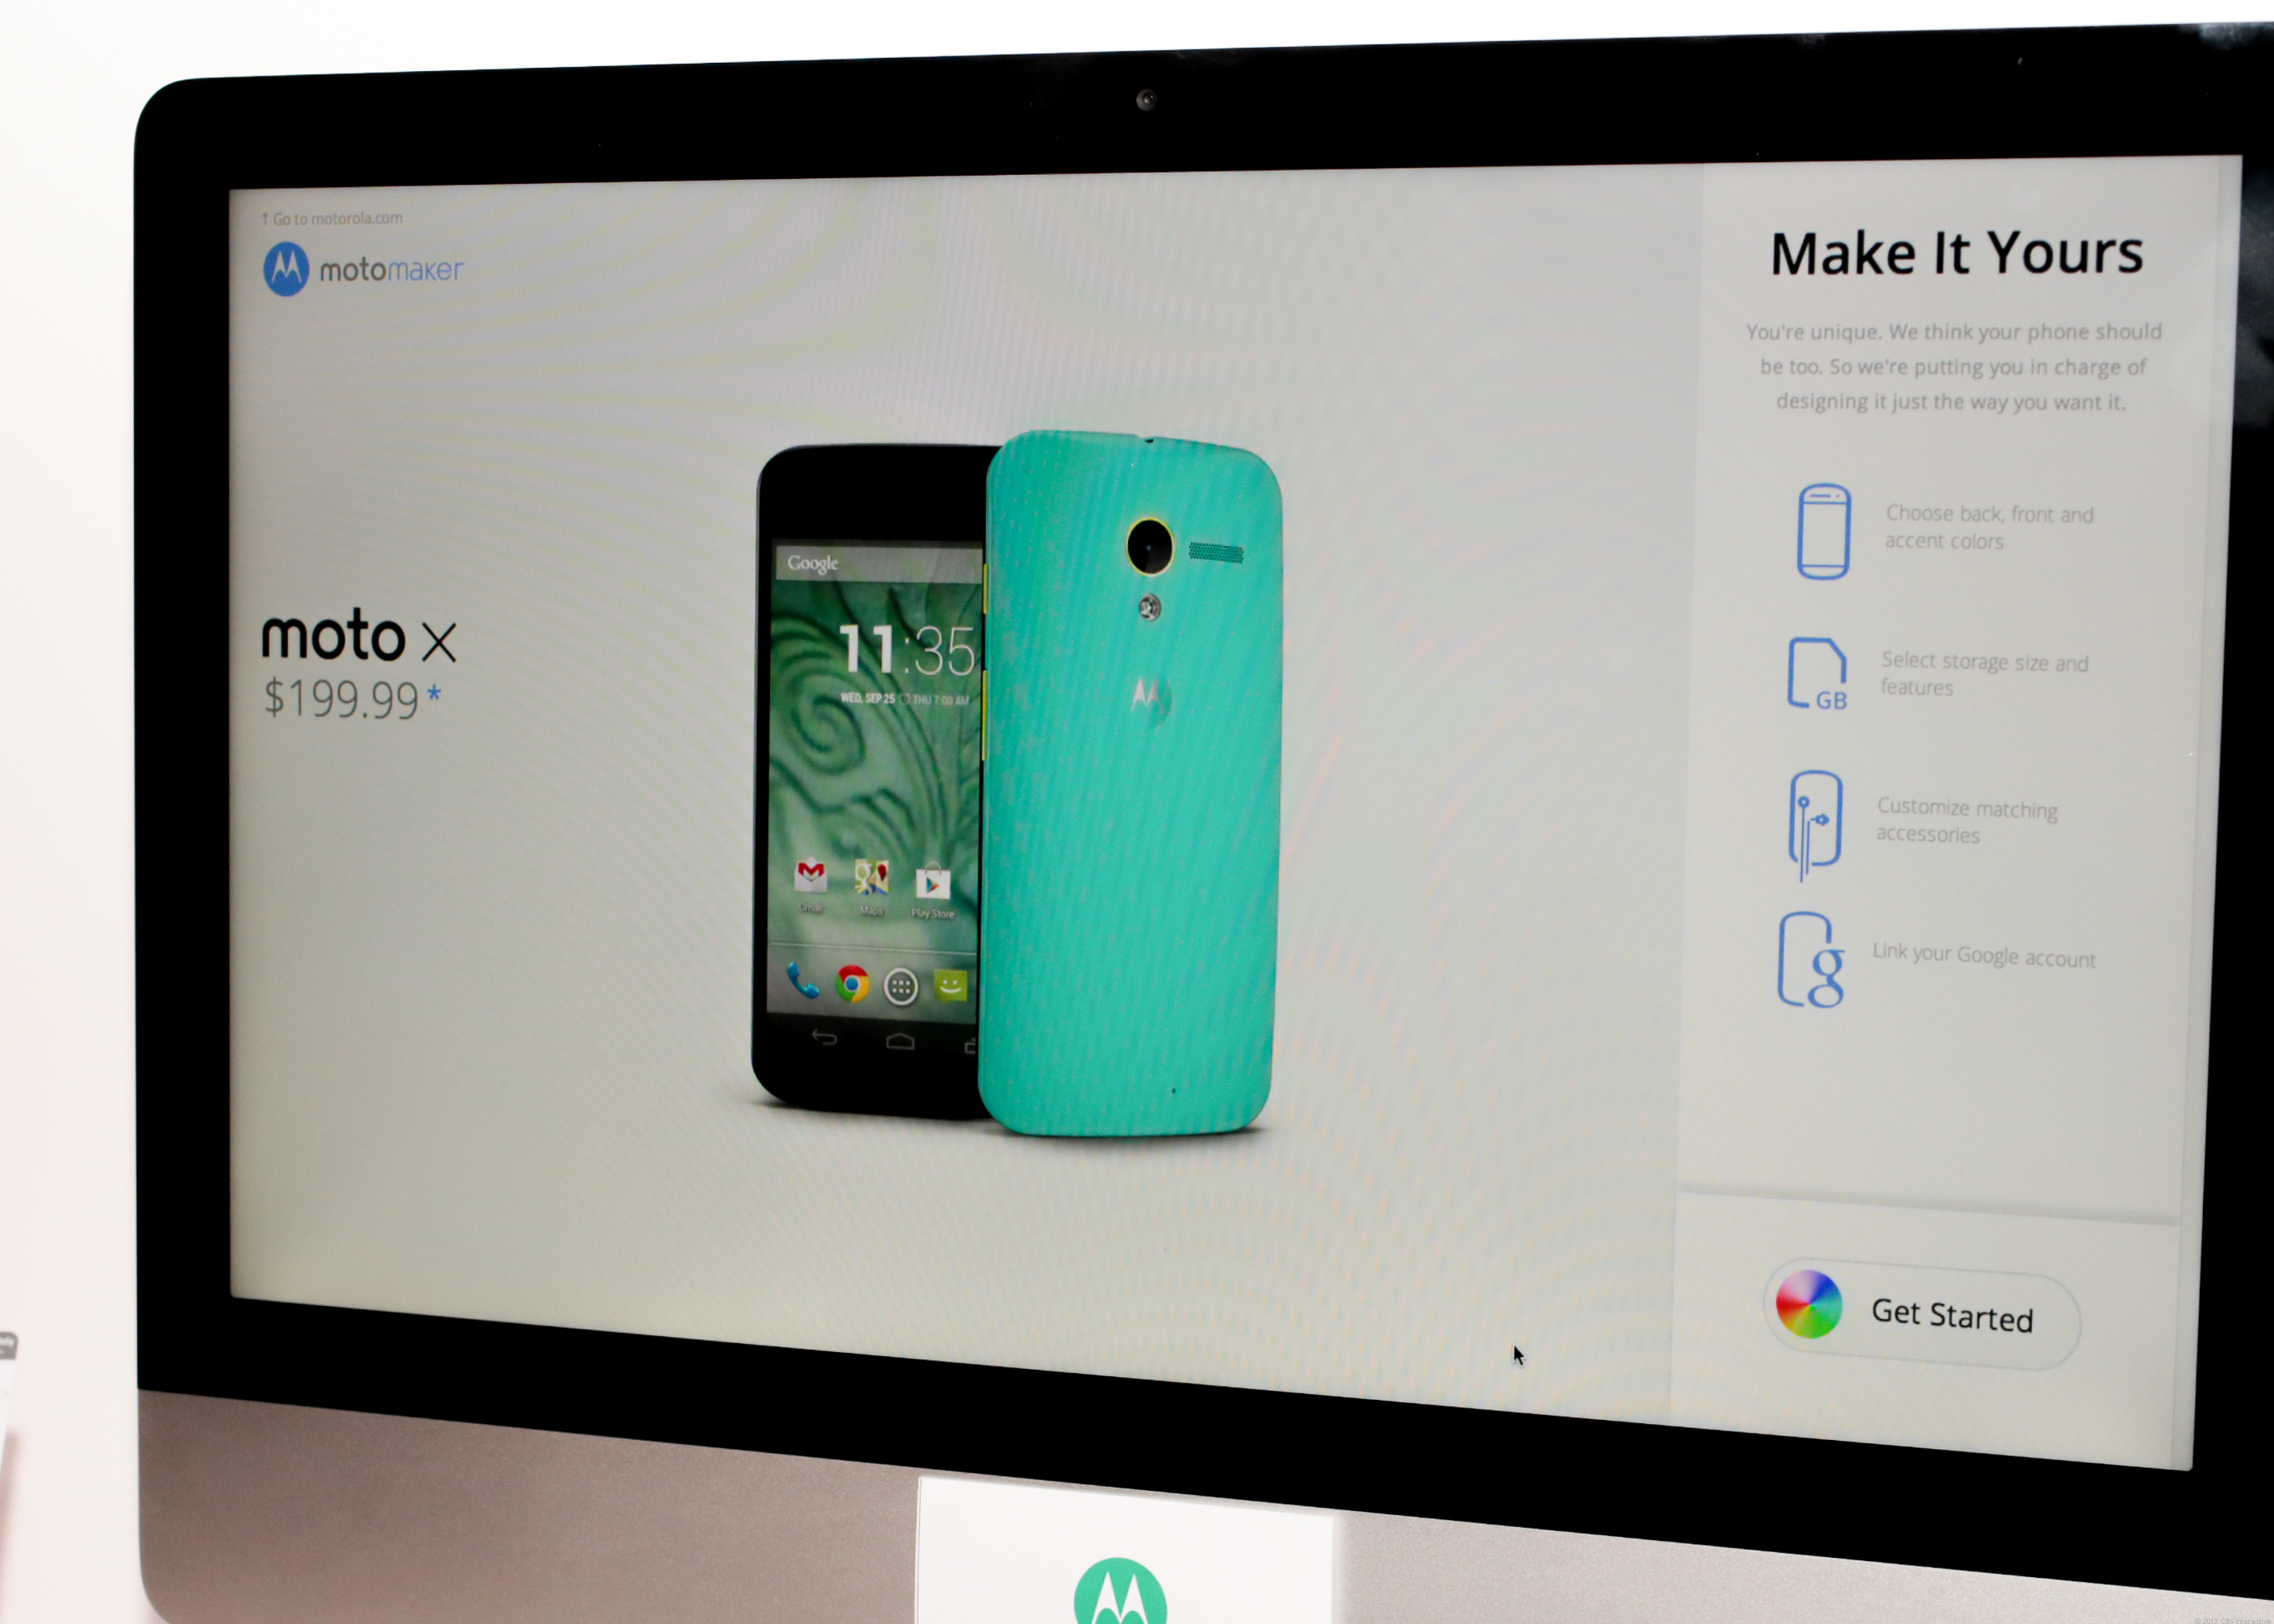 Meet the mighty Moto X (pictures) - Page 4